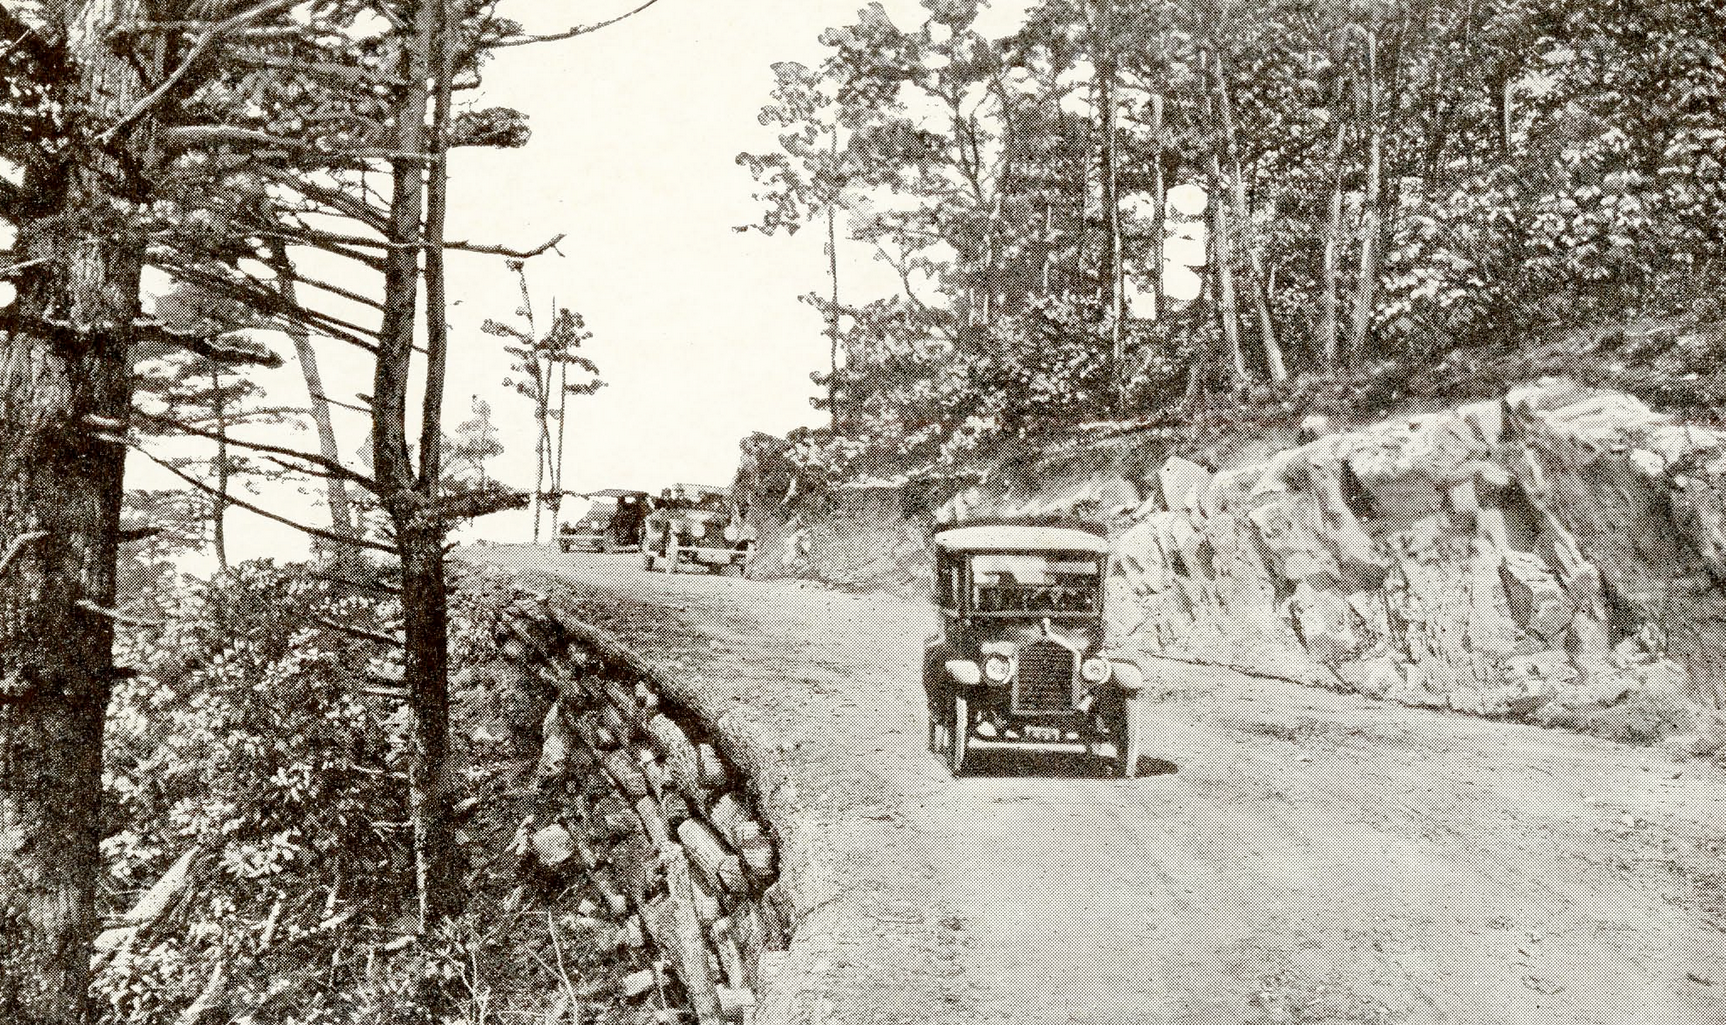 Early Road in Watauga County. Image courtesy of the Bobby Brendell Postcard Collection (Bob-Bre-3-88),  Digital Watauga Project .